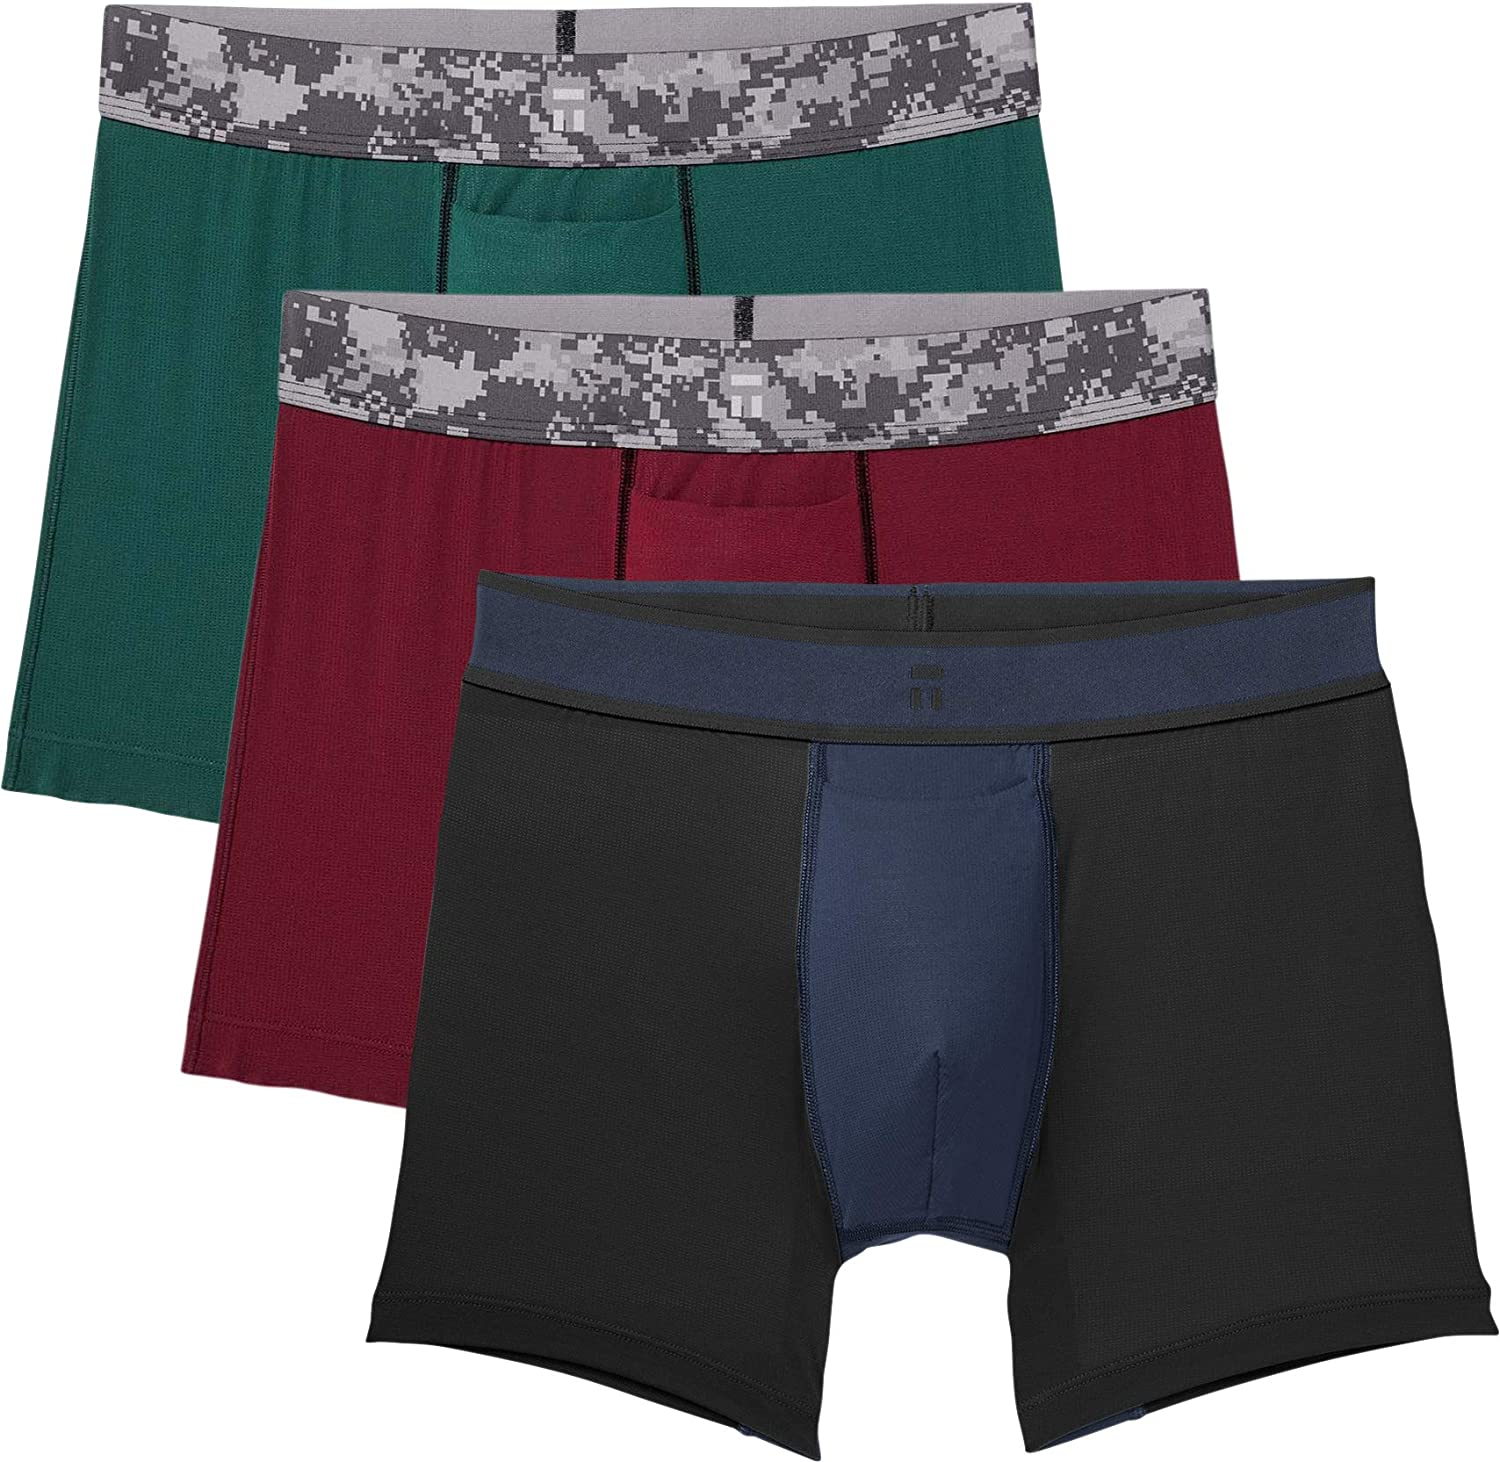 3 Pack Tommy John Mens Air Camo Trunks Comfortable Breathable Soft Underwear for Men